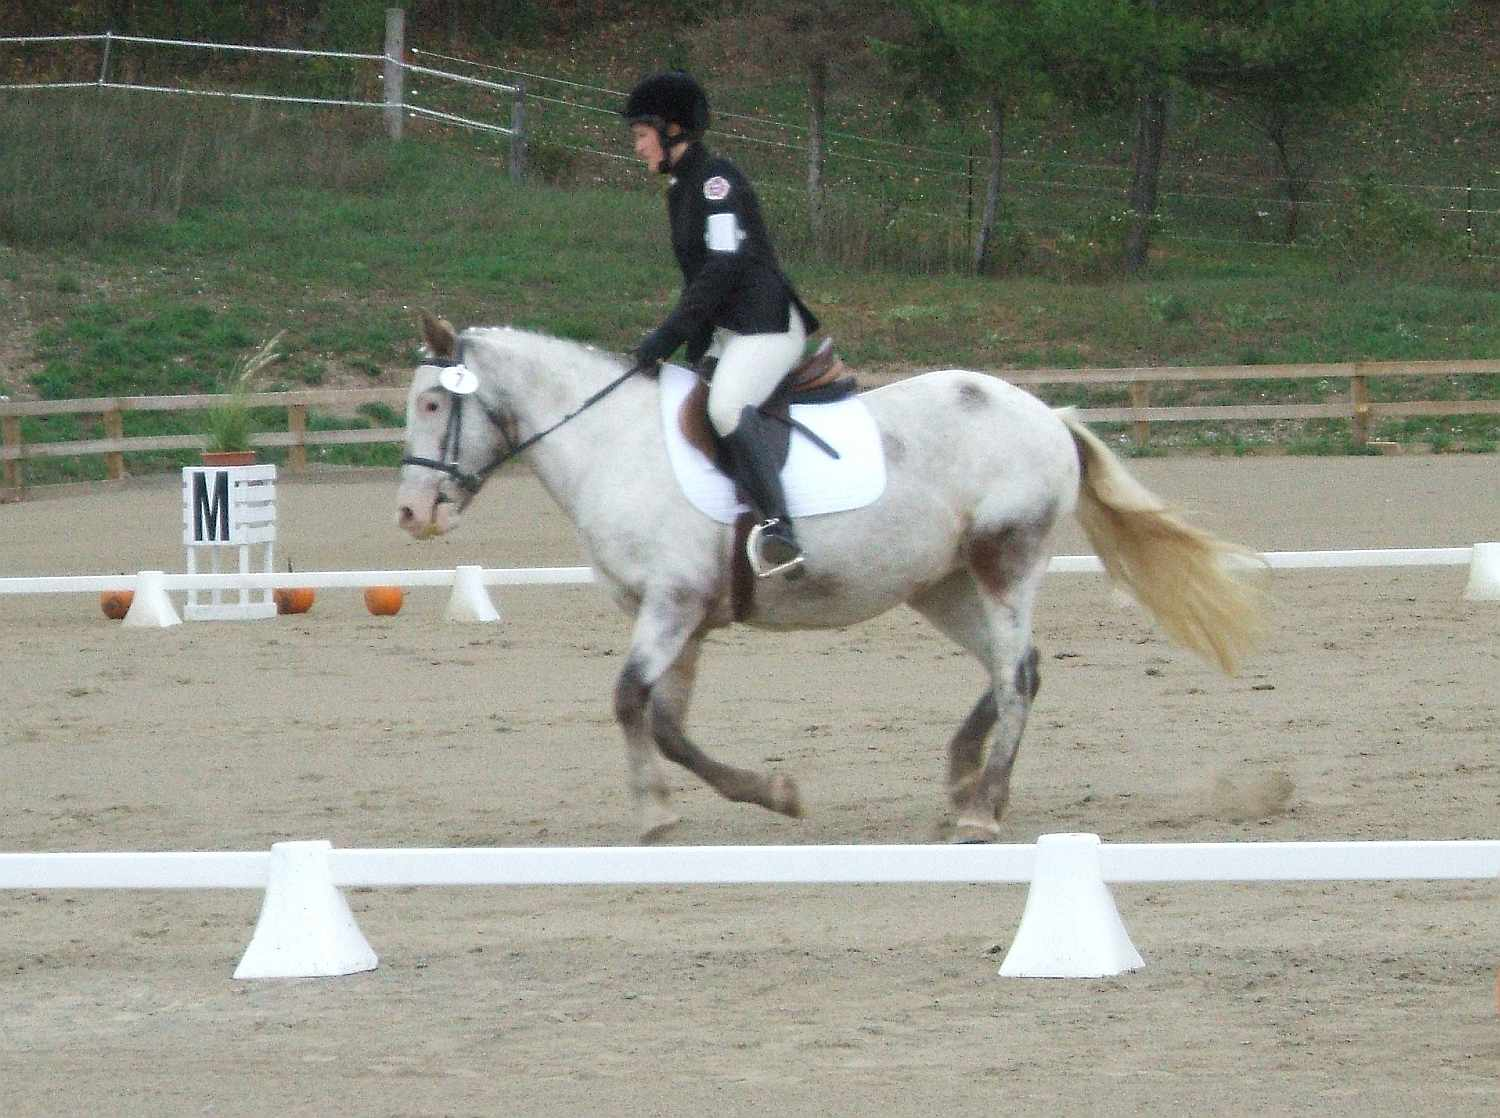 Pony Club dressage rider.